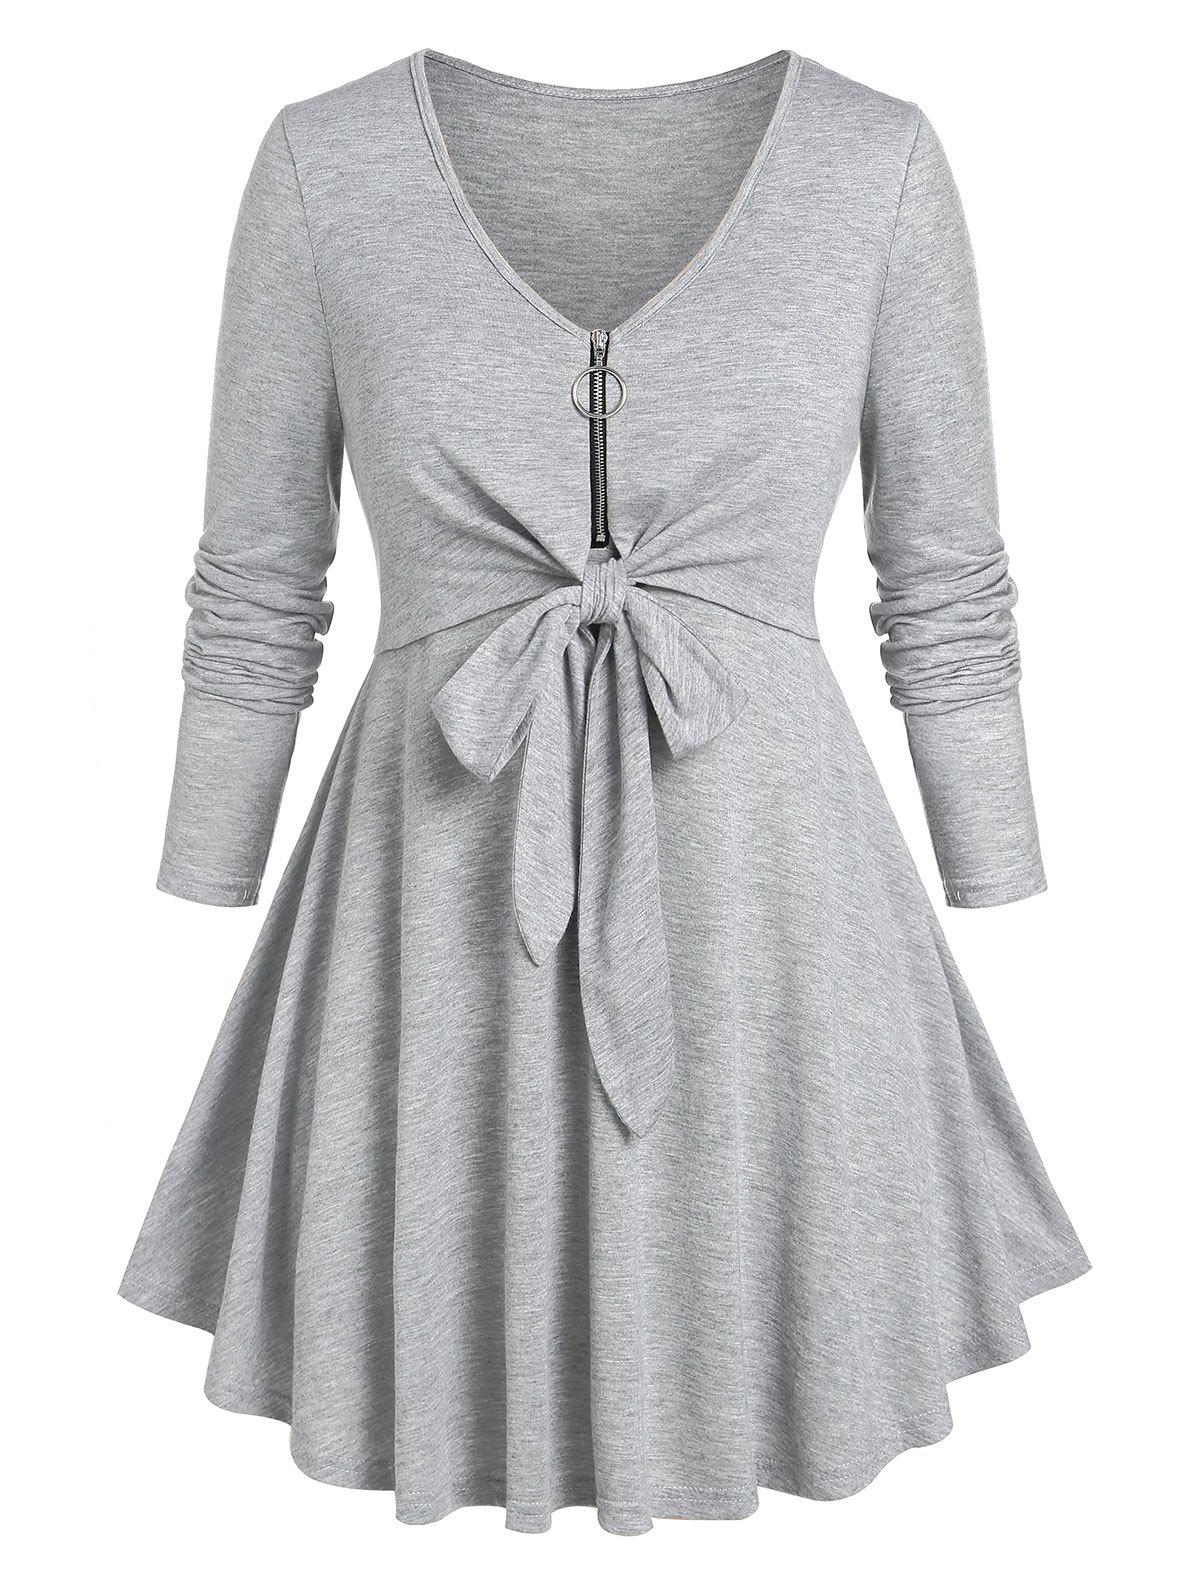 Plus Size Half Zip Knotted Long Sleeve Tee - LIGHT GRAY 5X